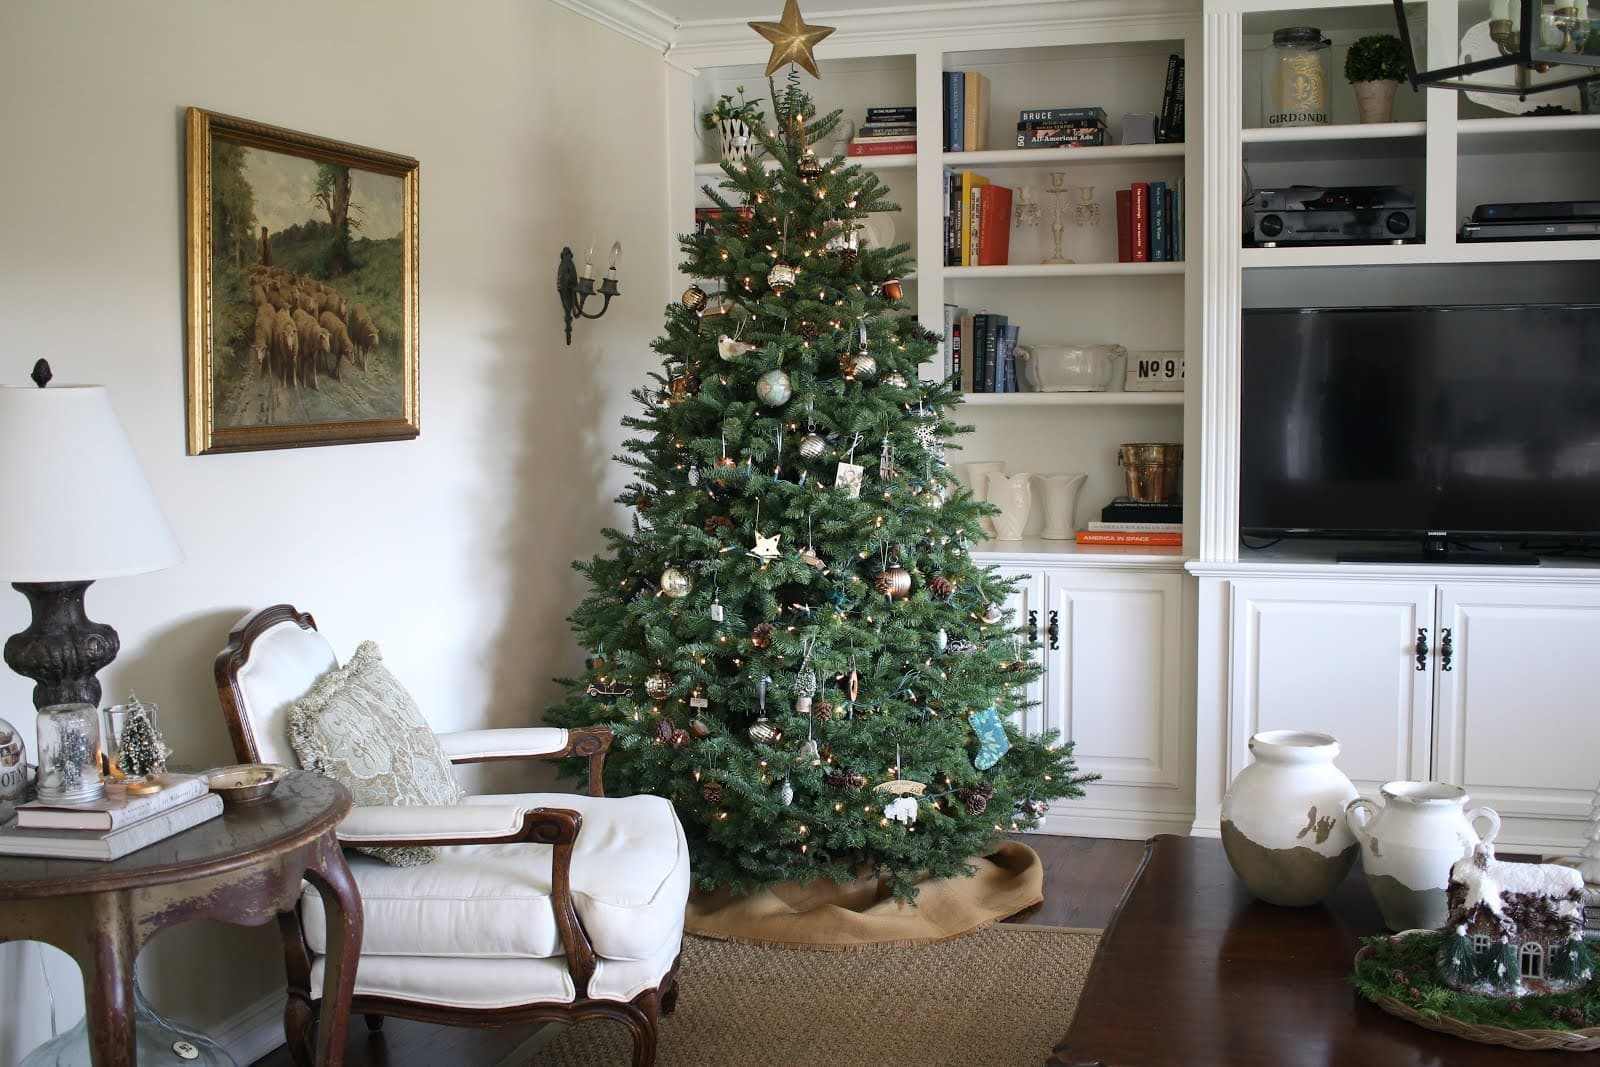 farmhouse inspired christmas tour i used a live tree in the family room with a burlap tree skirt - A Farmhouse Christmas